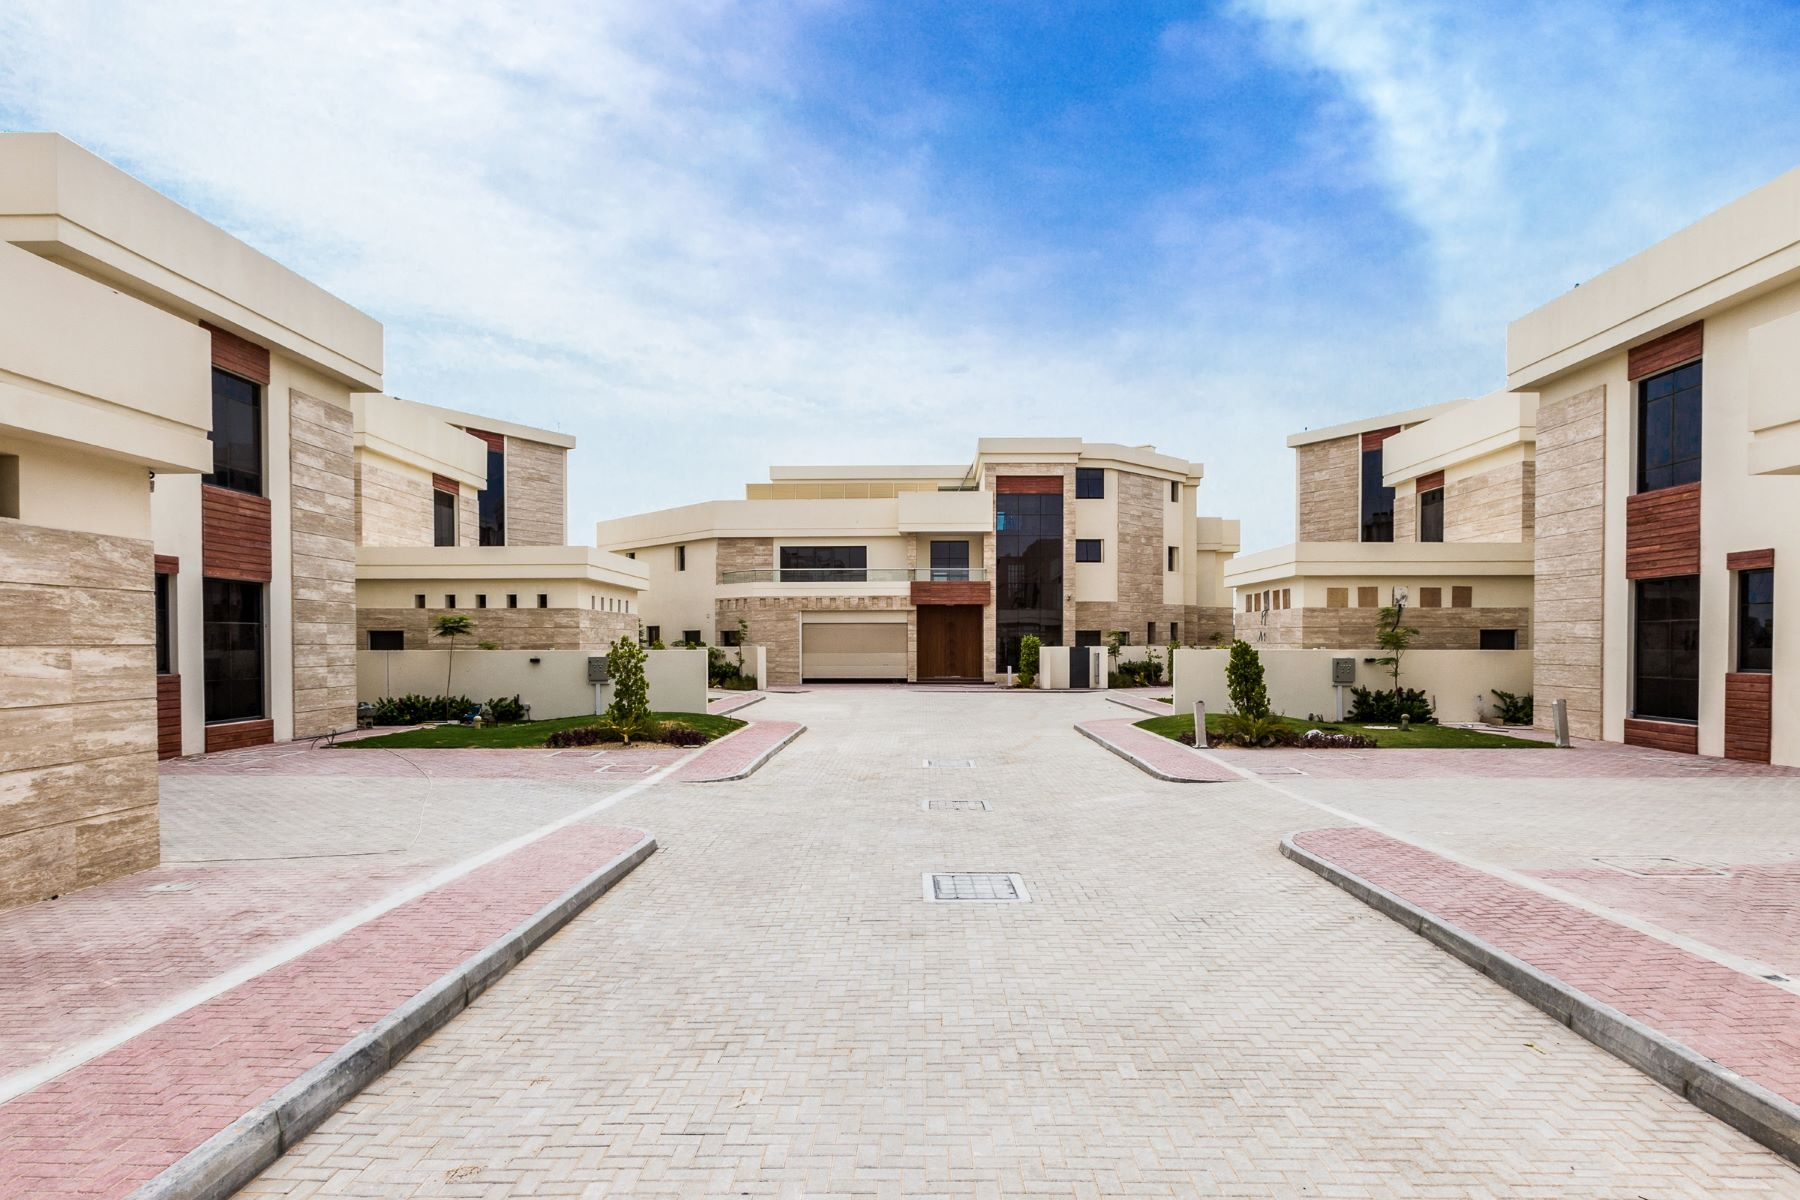 Property for Sale at VIP Frond 4 Luxury Villas Tip Location Dubai, Dubai United Arab Emirates